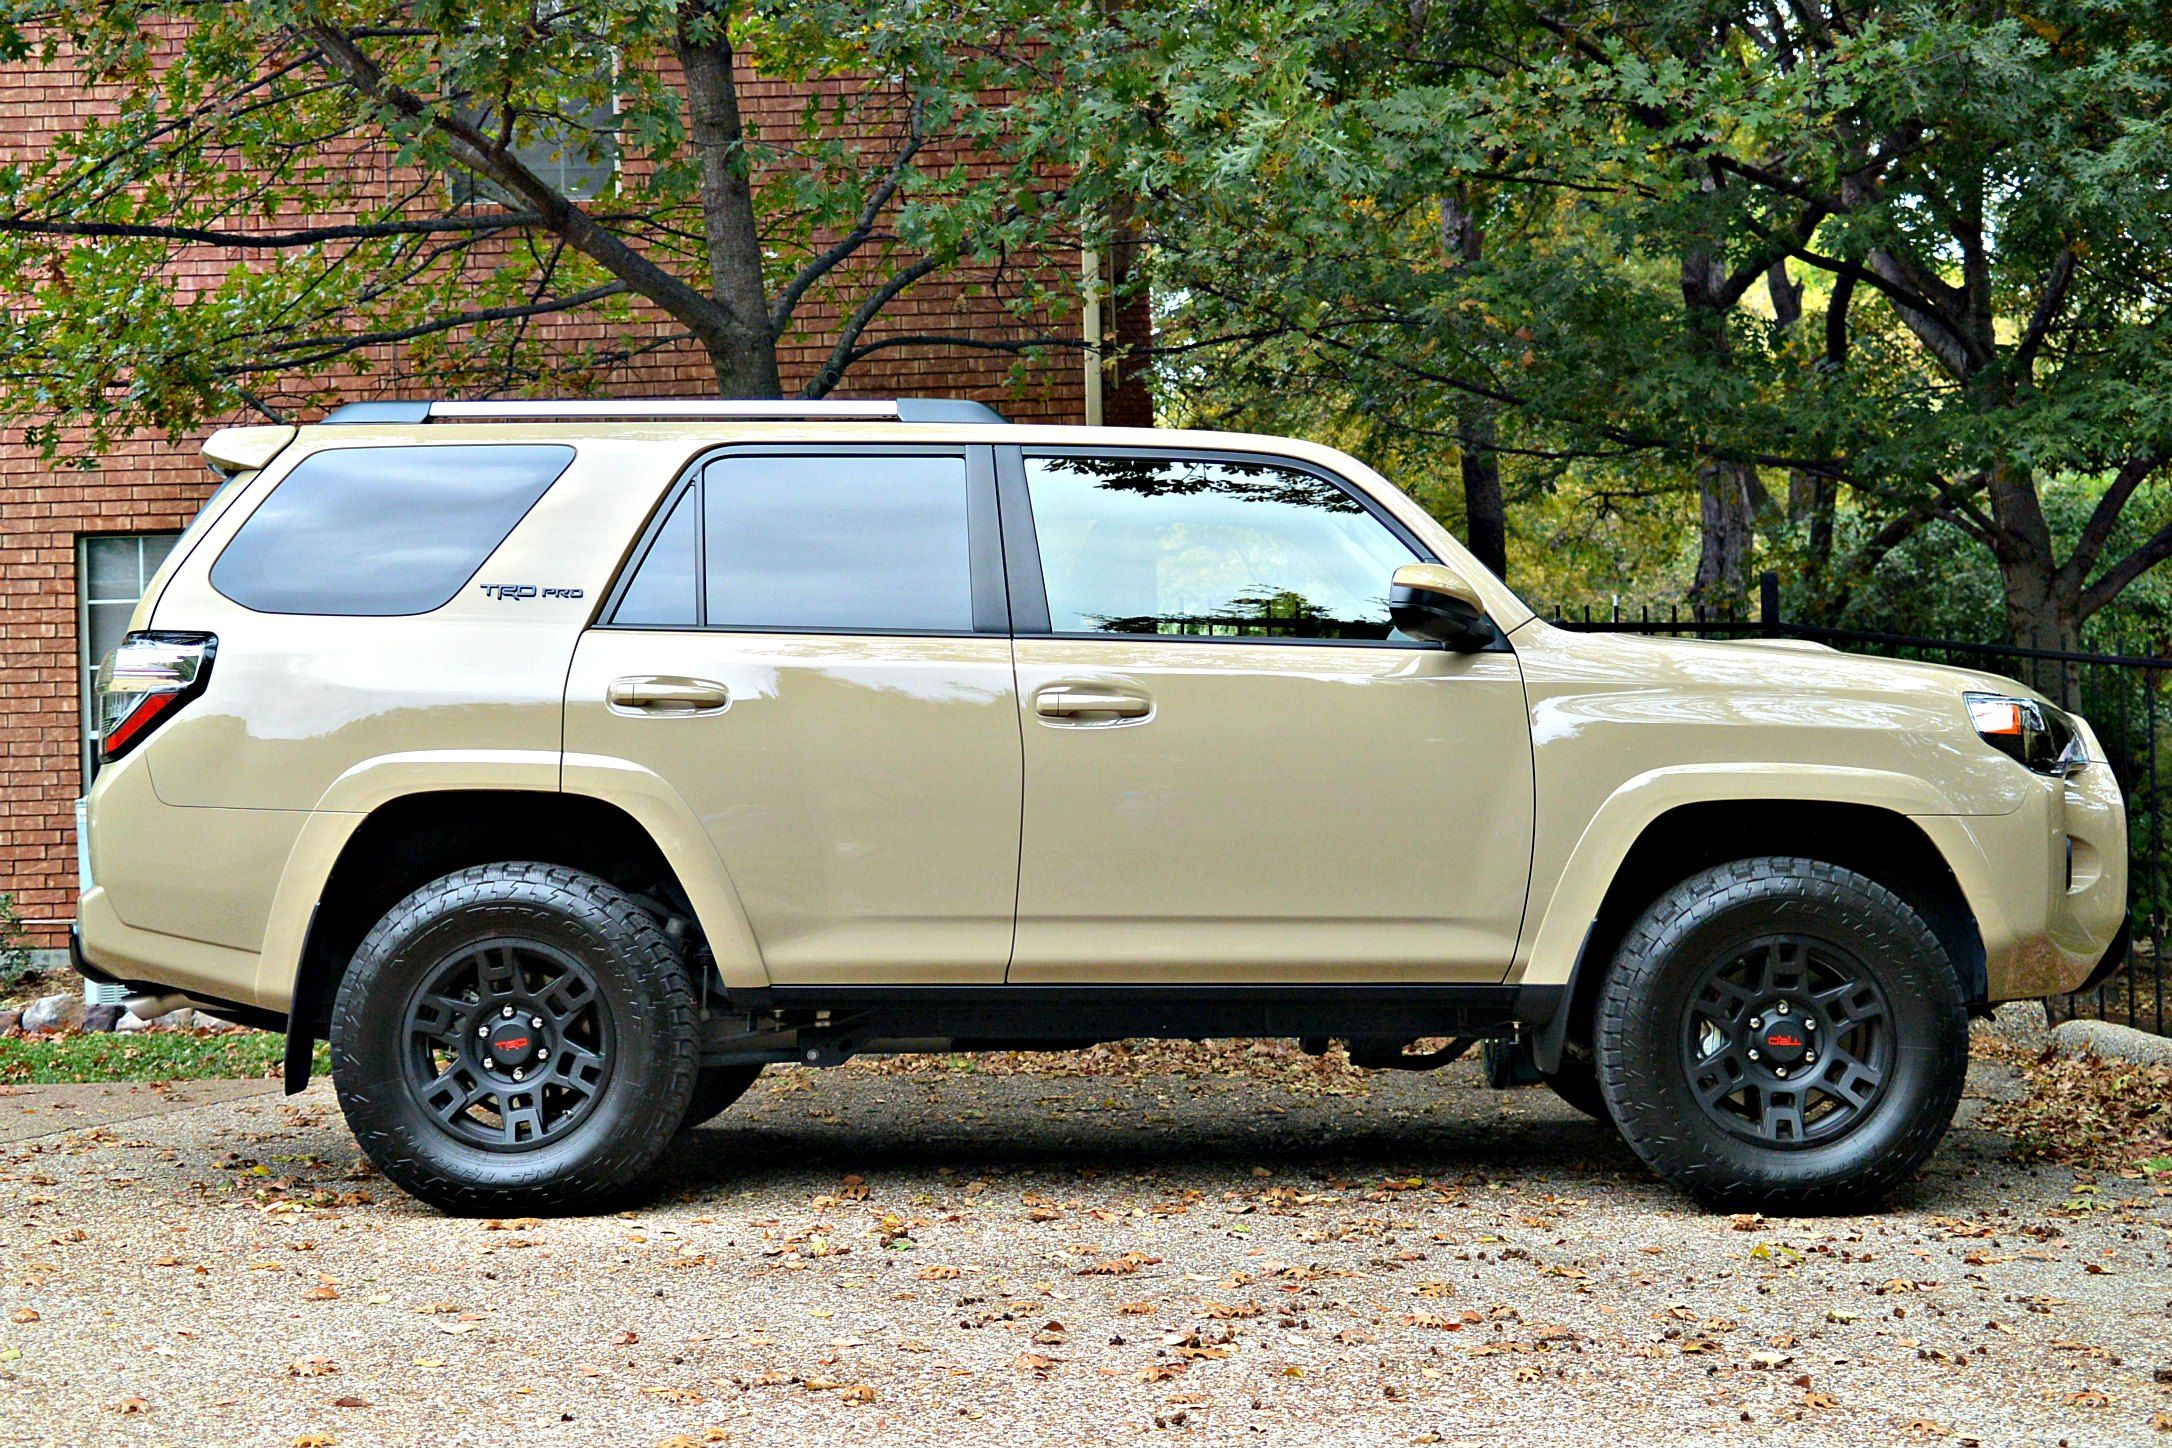 Love The Color Of This 4runner 2016 Toyota Trd Pro Performs Those Tasks With Style Especially If Weather Has Taken A Turn For Worse